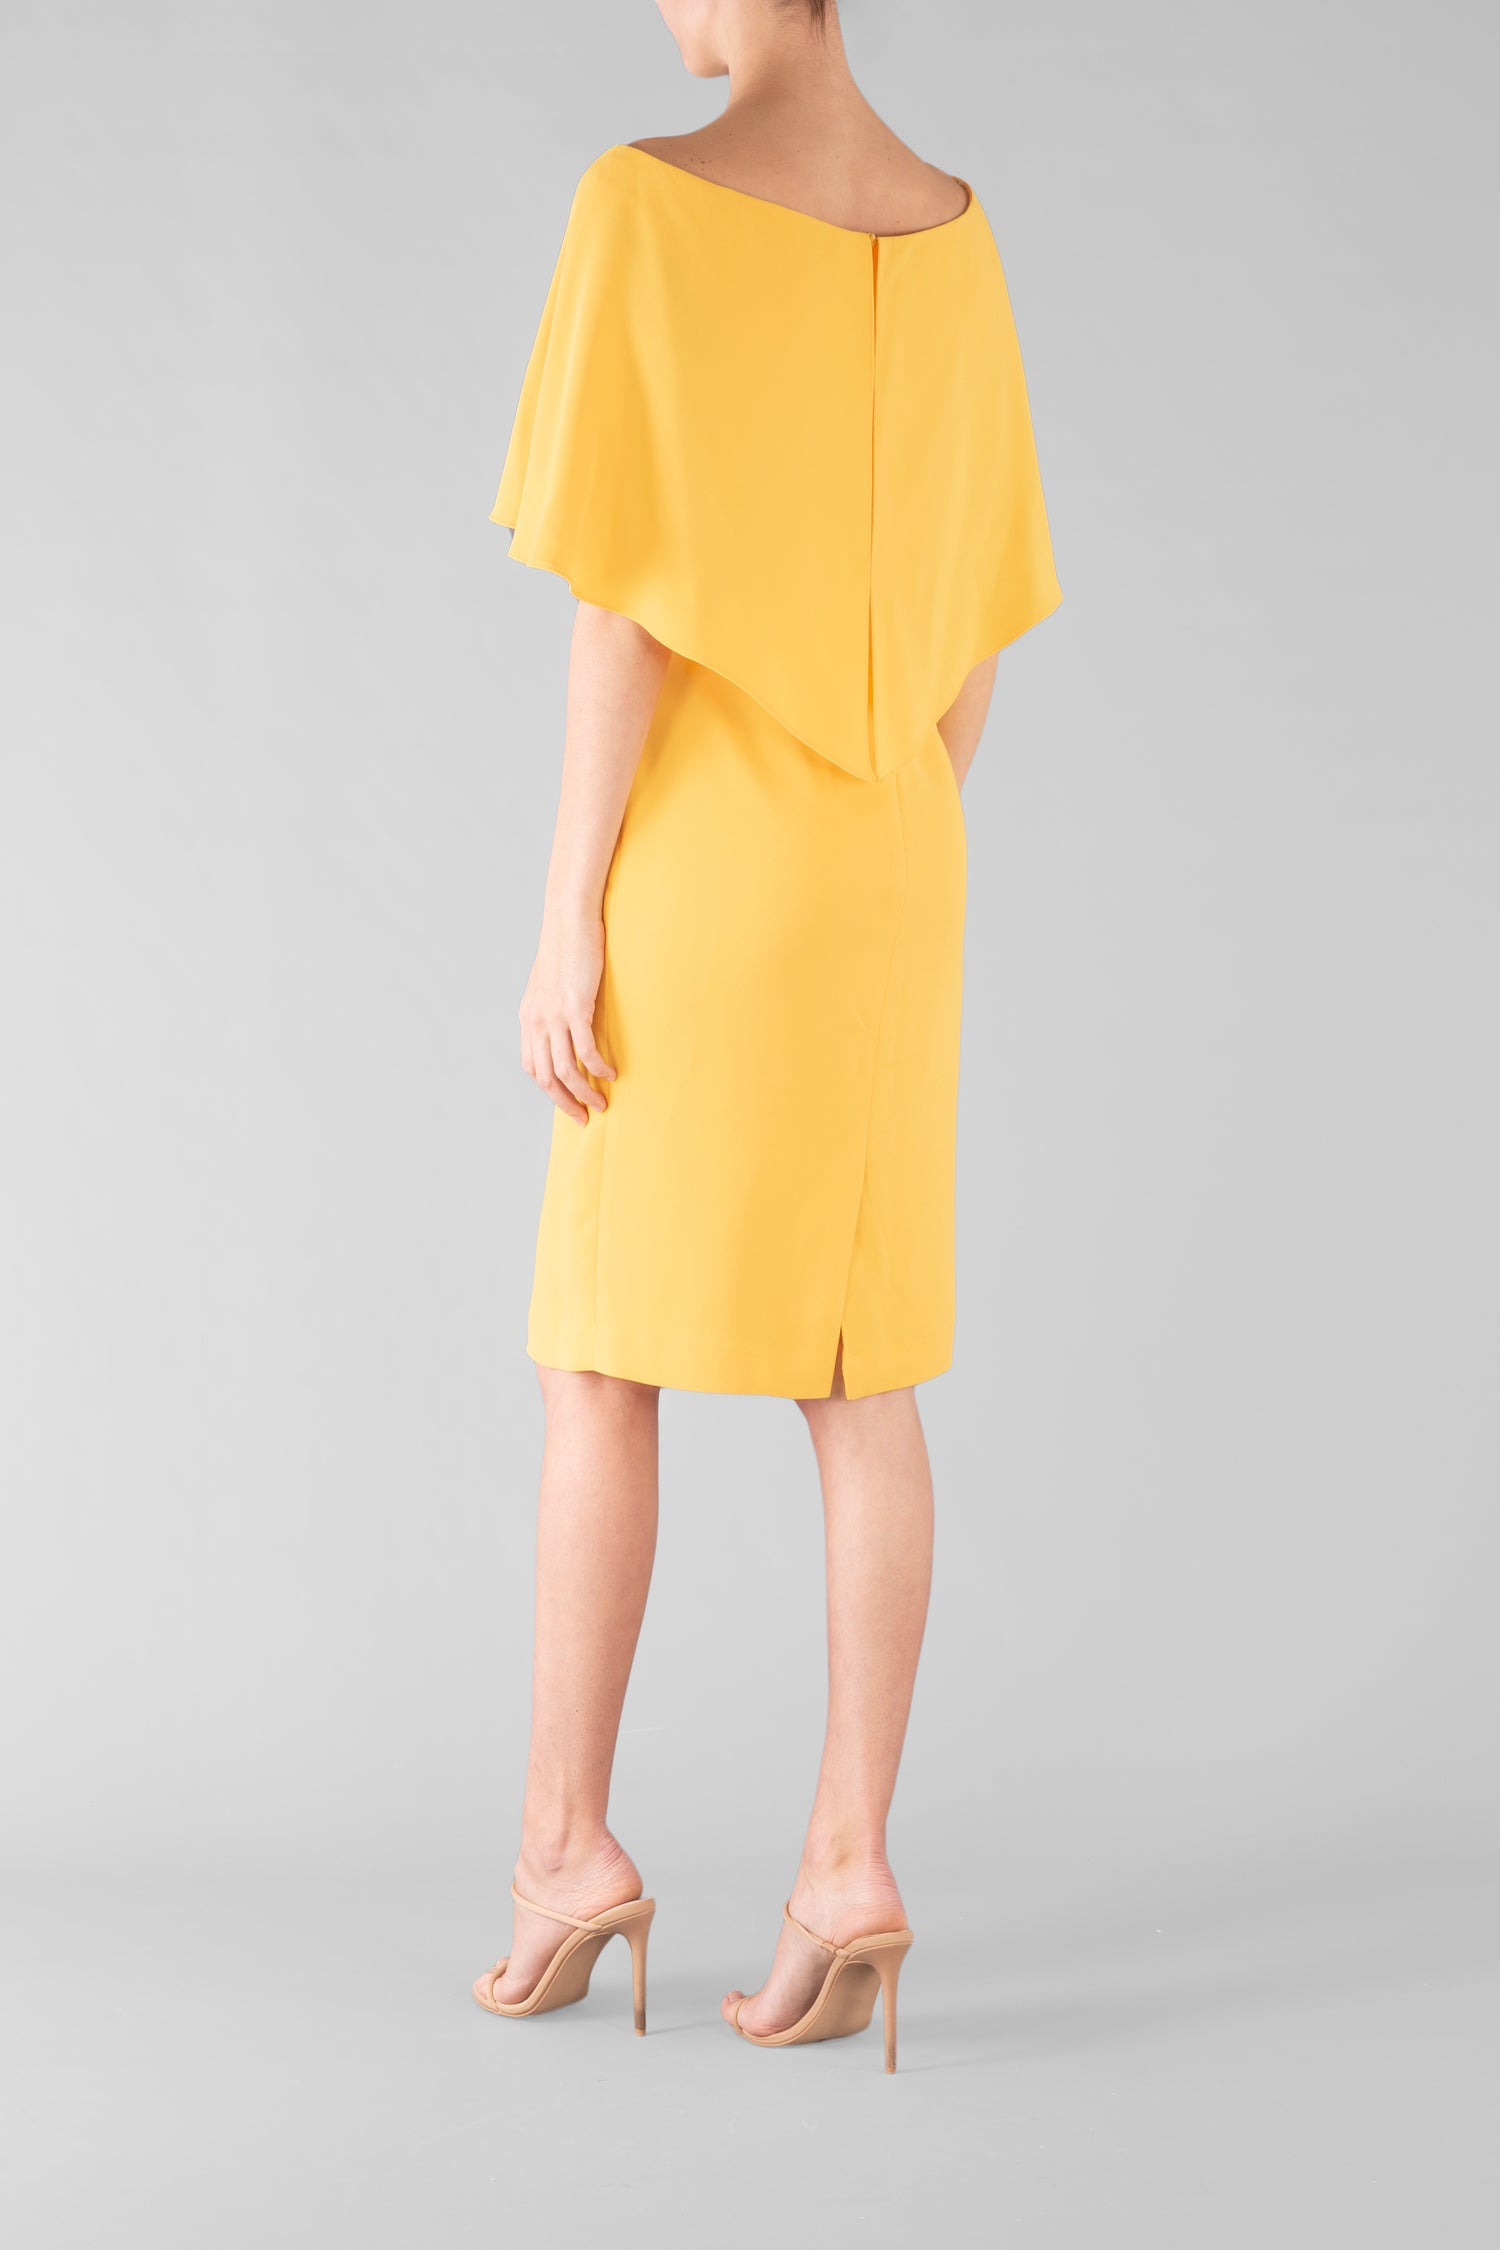 YELLOW CREPE CAPE DRESS